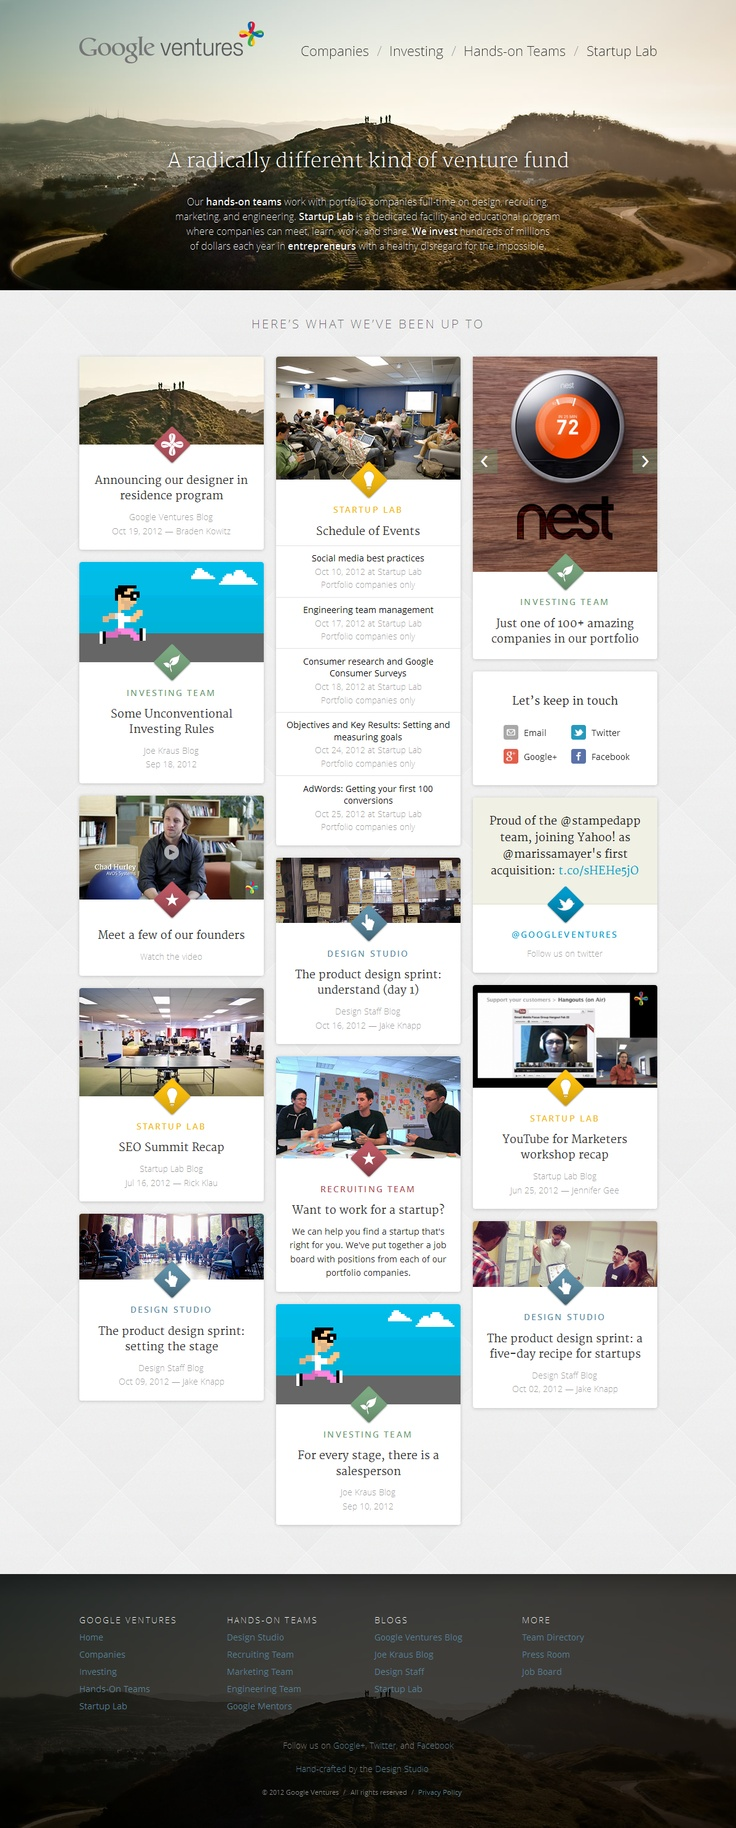 Google ventures theme - This Site Was Hand Crafted By The Google Ventures Design Studio Http